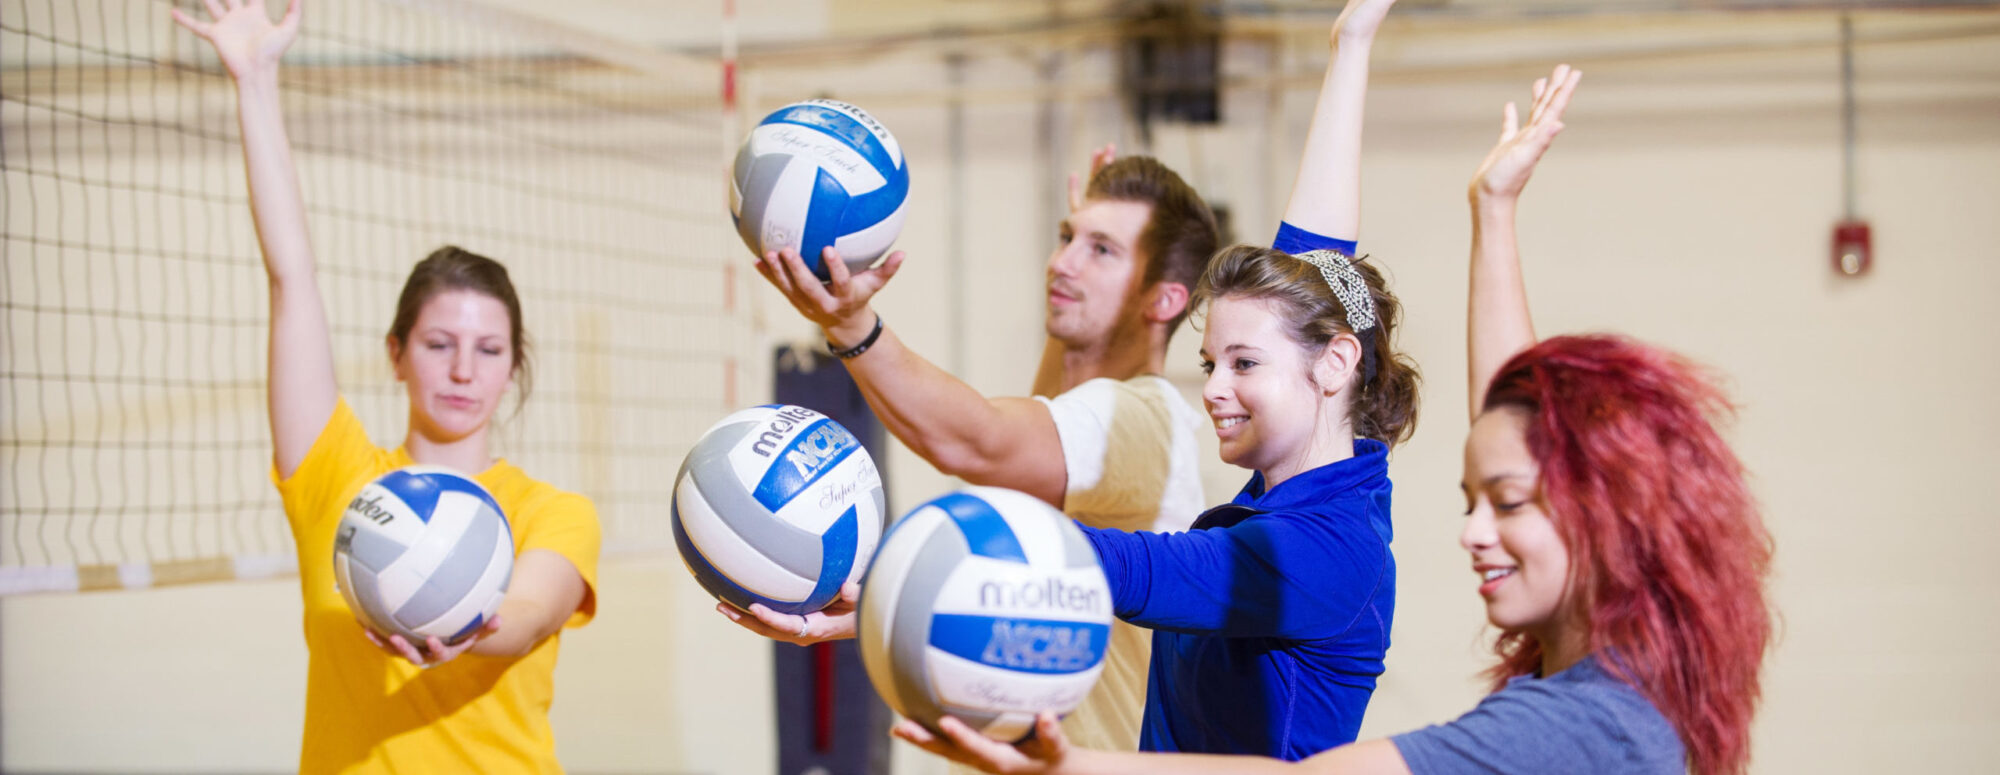 Young female volleyball player coaching one young man and two women